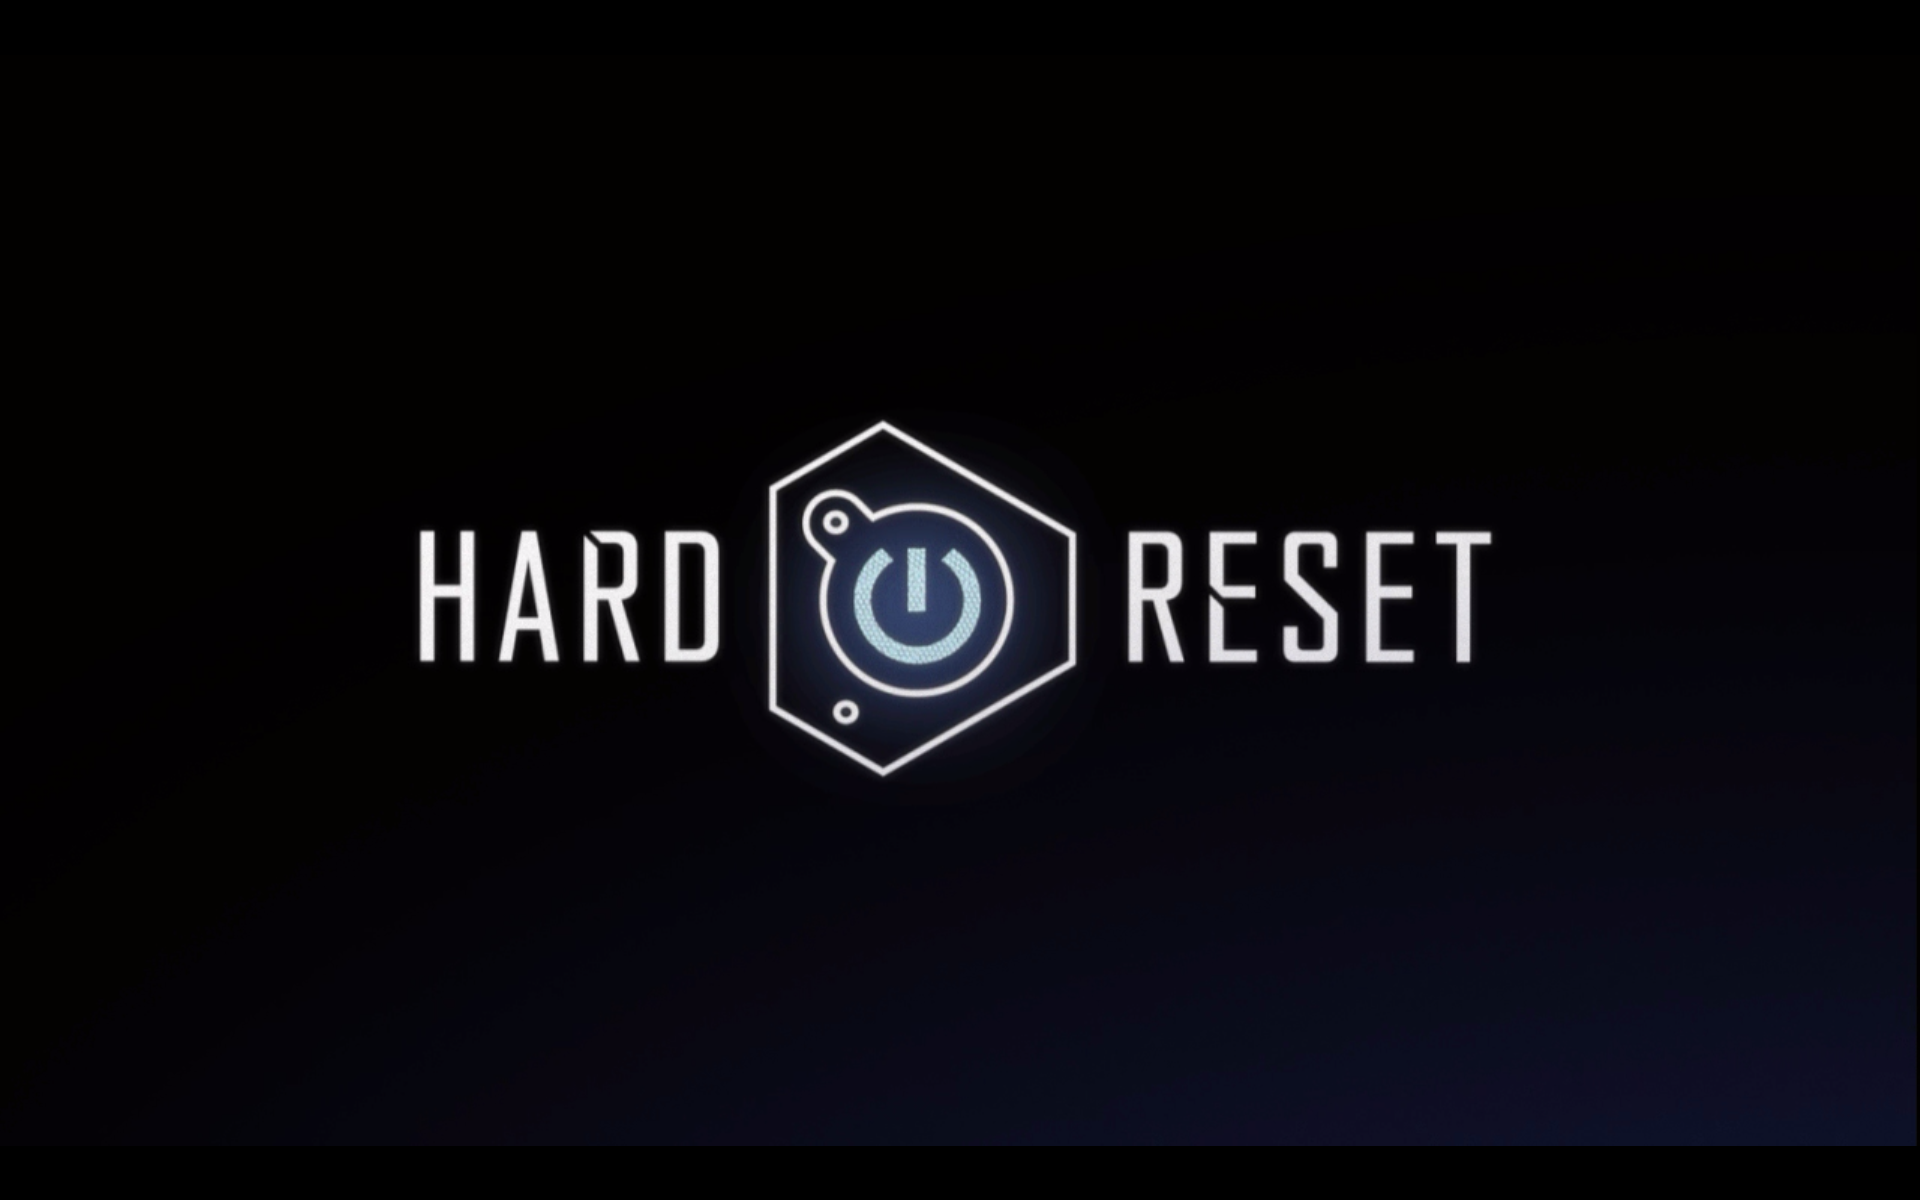 Hard Reset Windows Title shown in intro